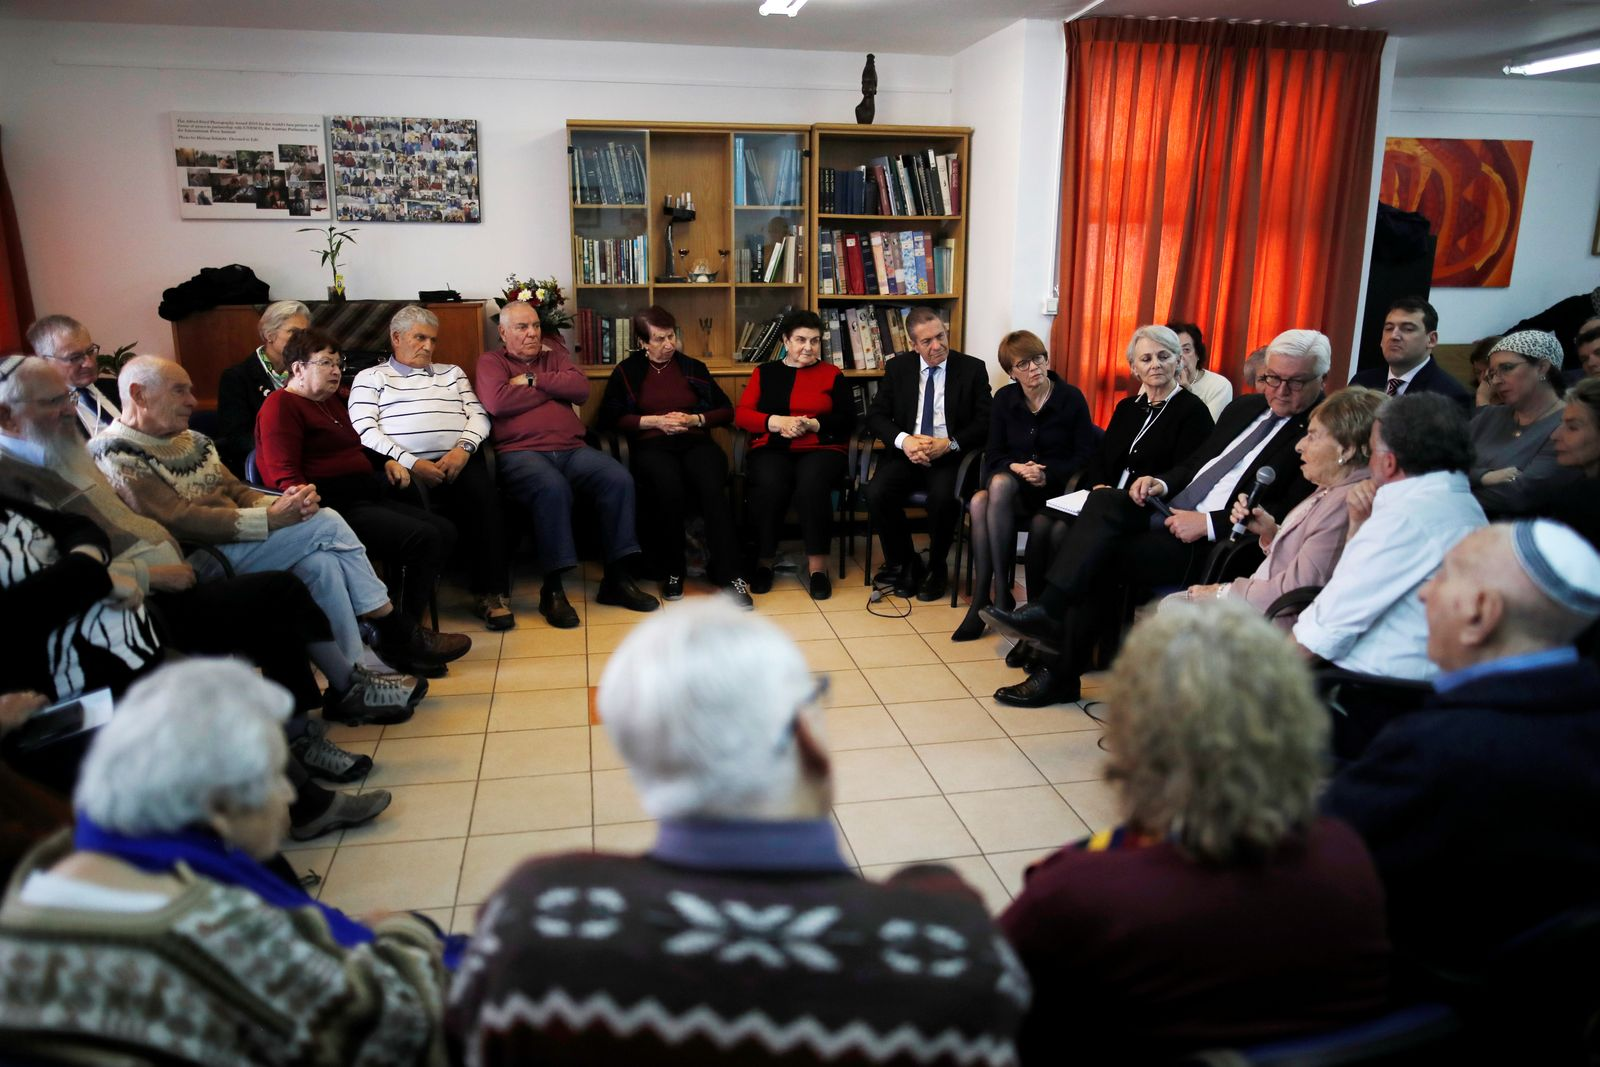 FILE PHOTO:German President Frank-Walter Steinmeier meets with people, including Holocaust survivors, during a visit to AMCHA, a group providing support to Holocaust survivors in Israel, in Jerusalem